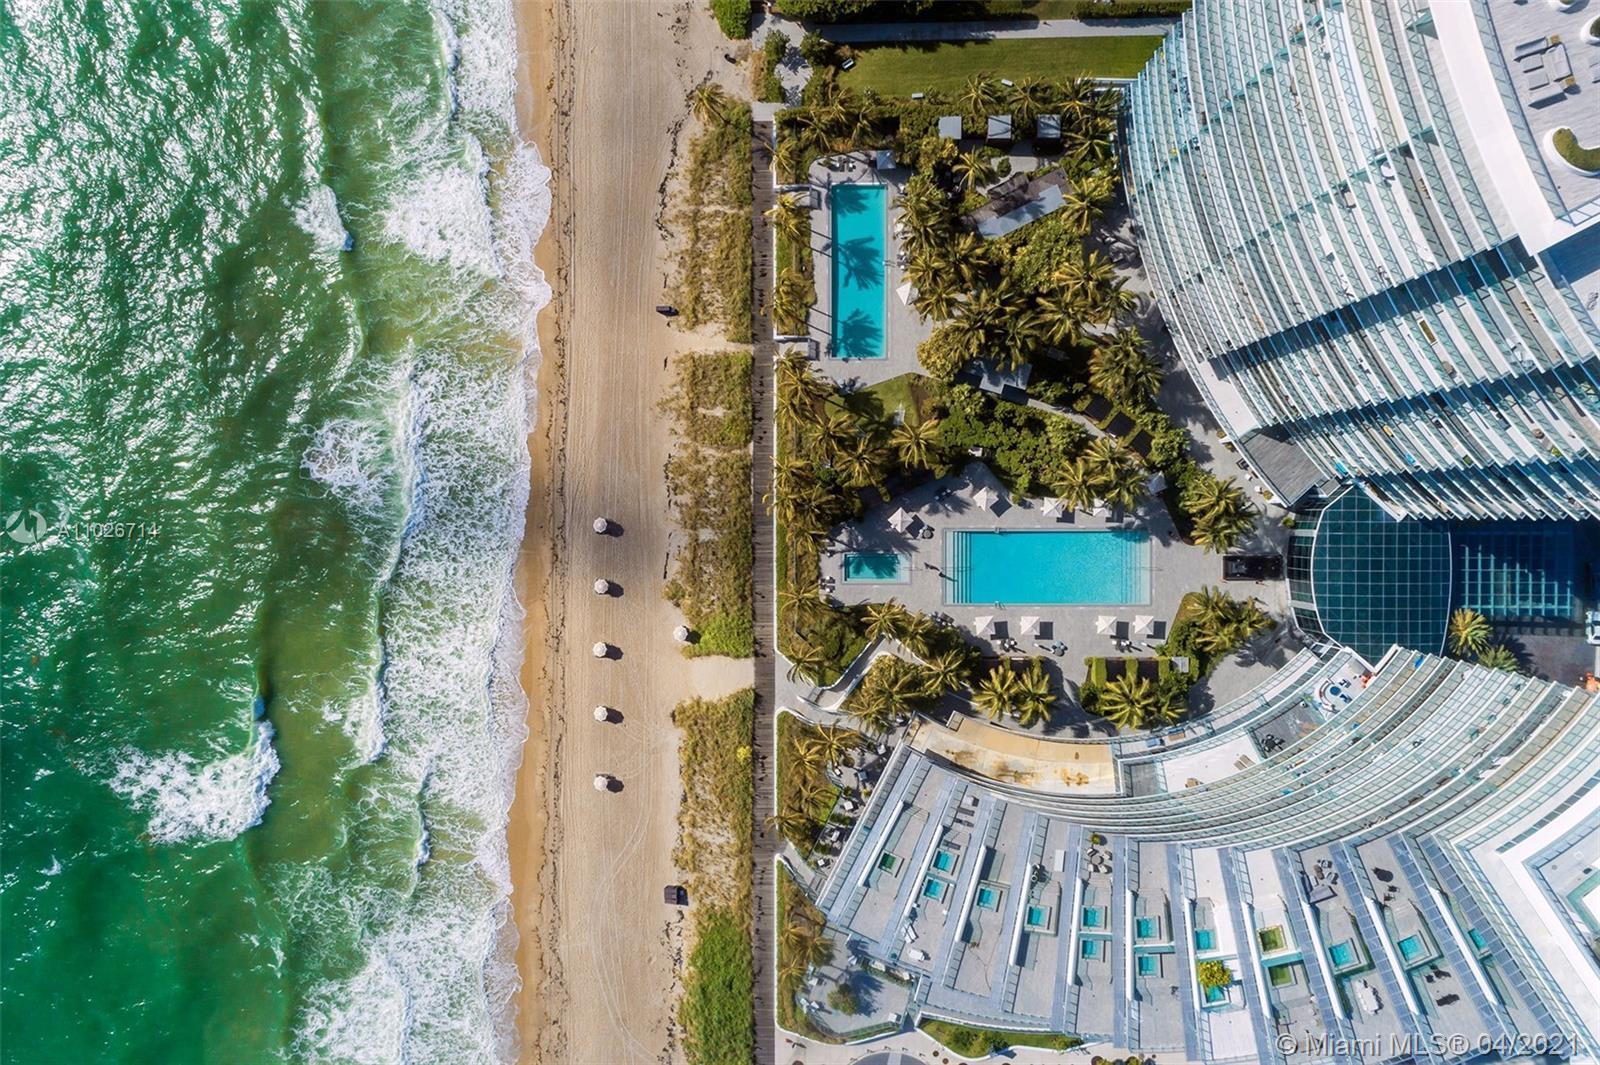 Furnished Beach House! This customized luxury oceanfront residence at Auberge Beach will astound you